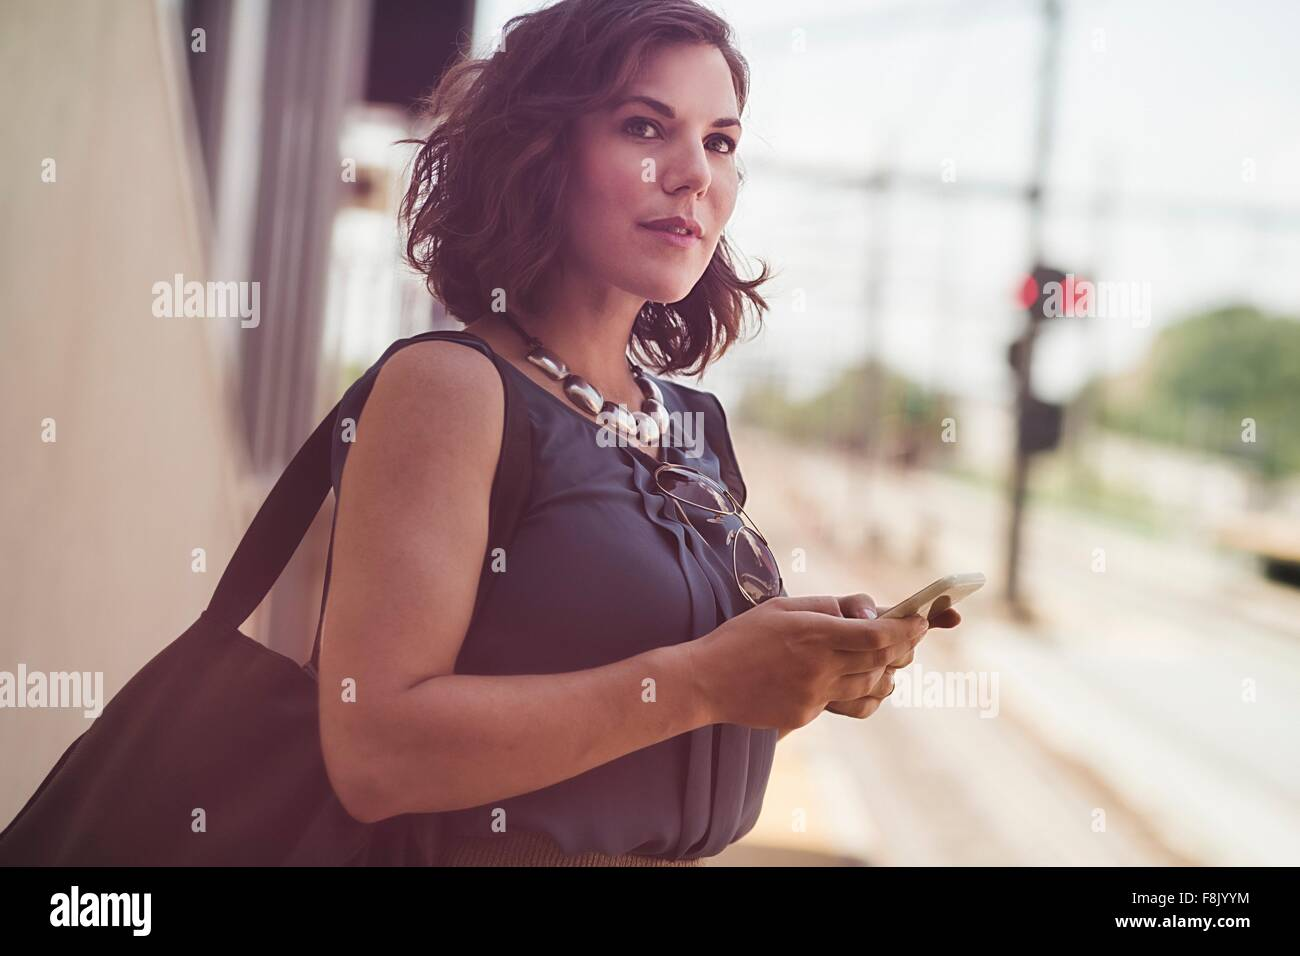 Mid adult woman en attente à la gare, holding smartphone Photo Stock